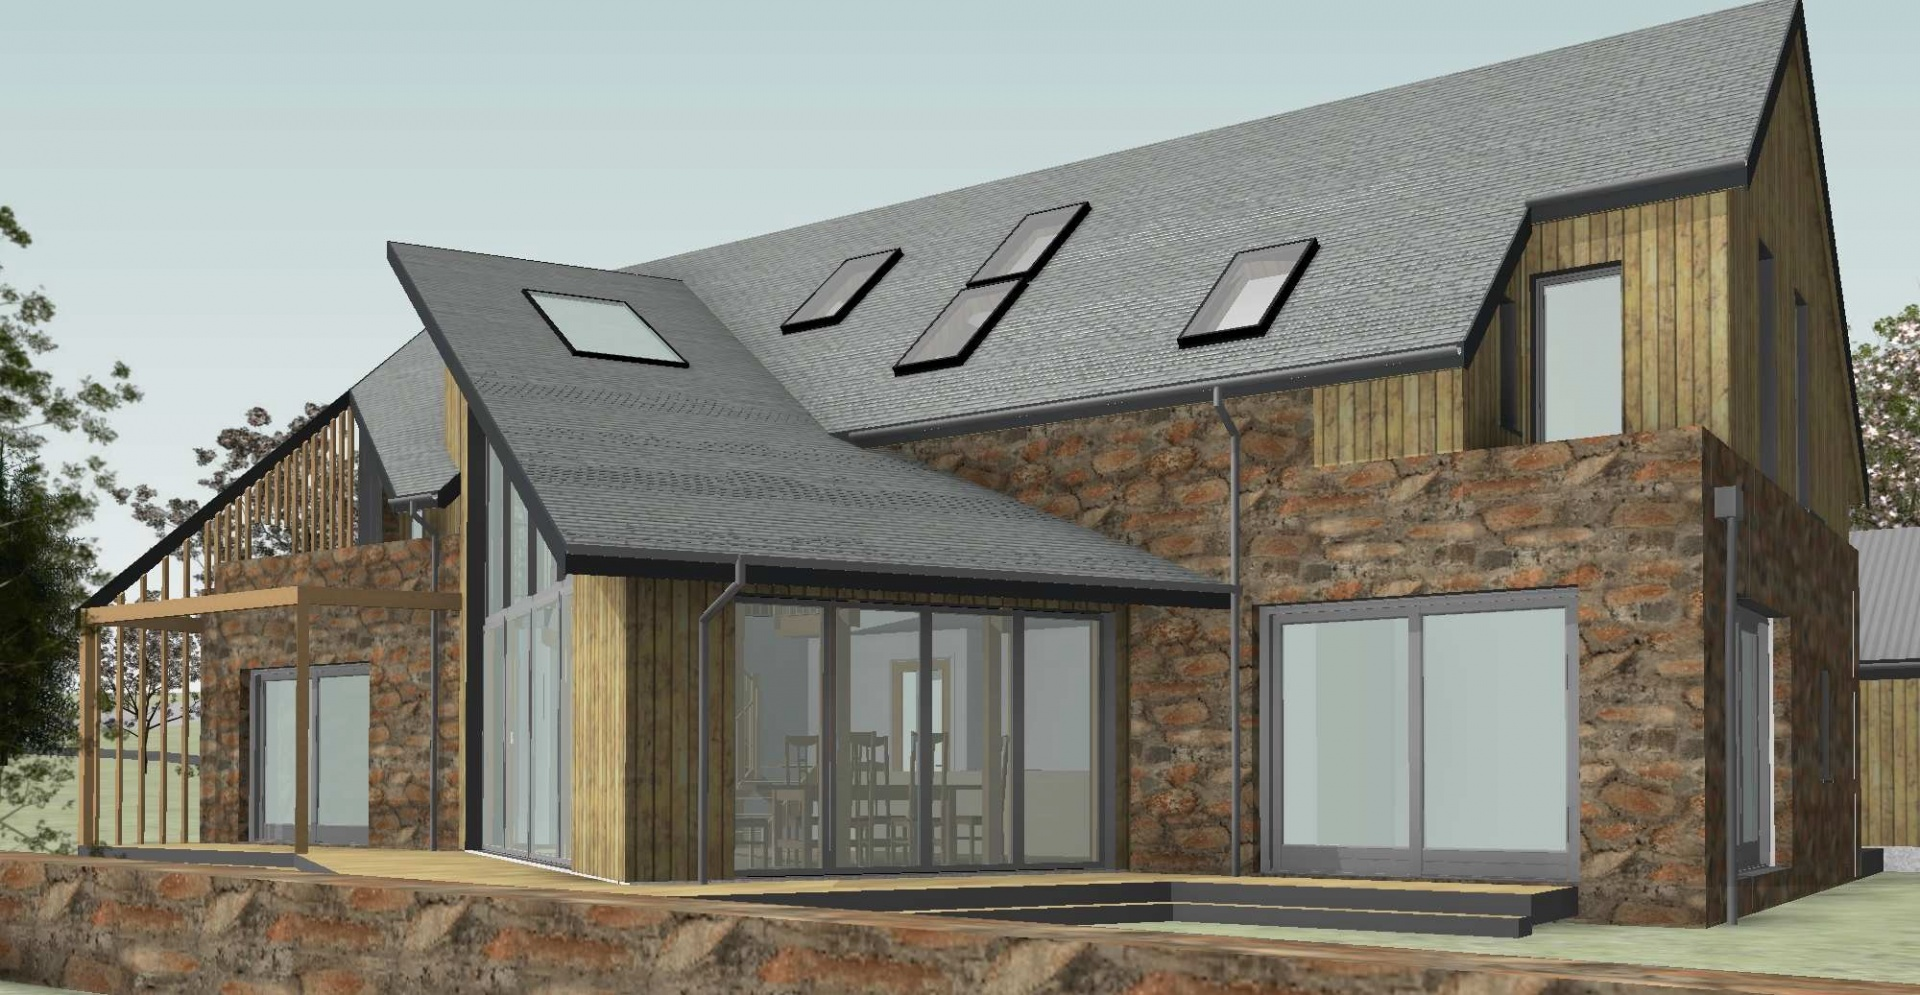 FAKRO roof windows for Aberdeenshire Passivhaus self-build